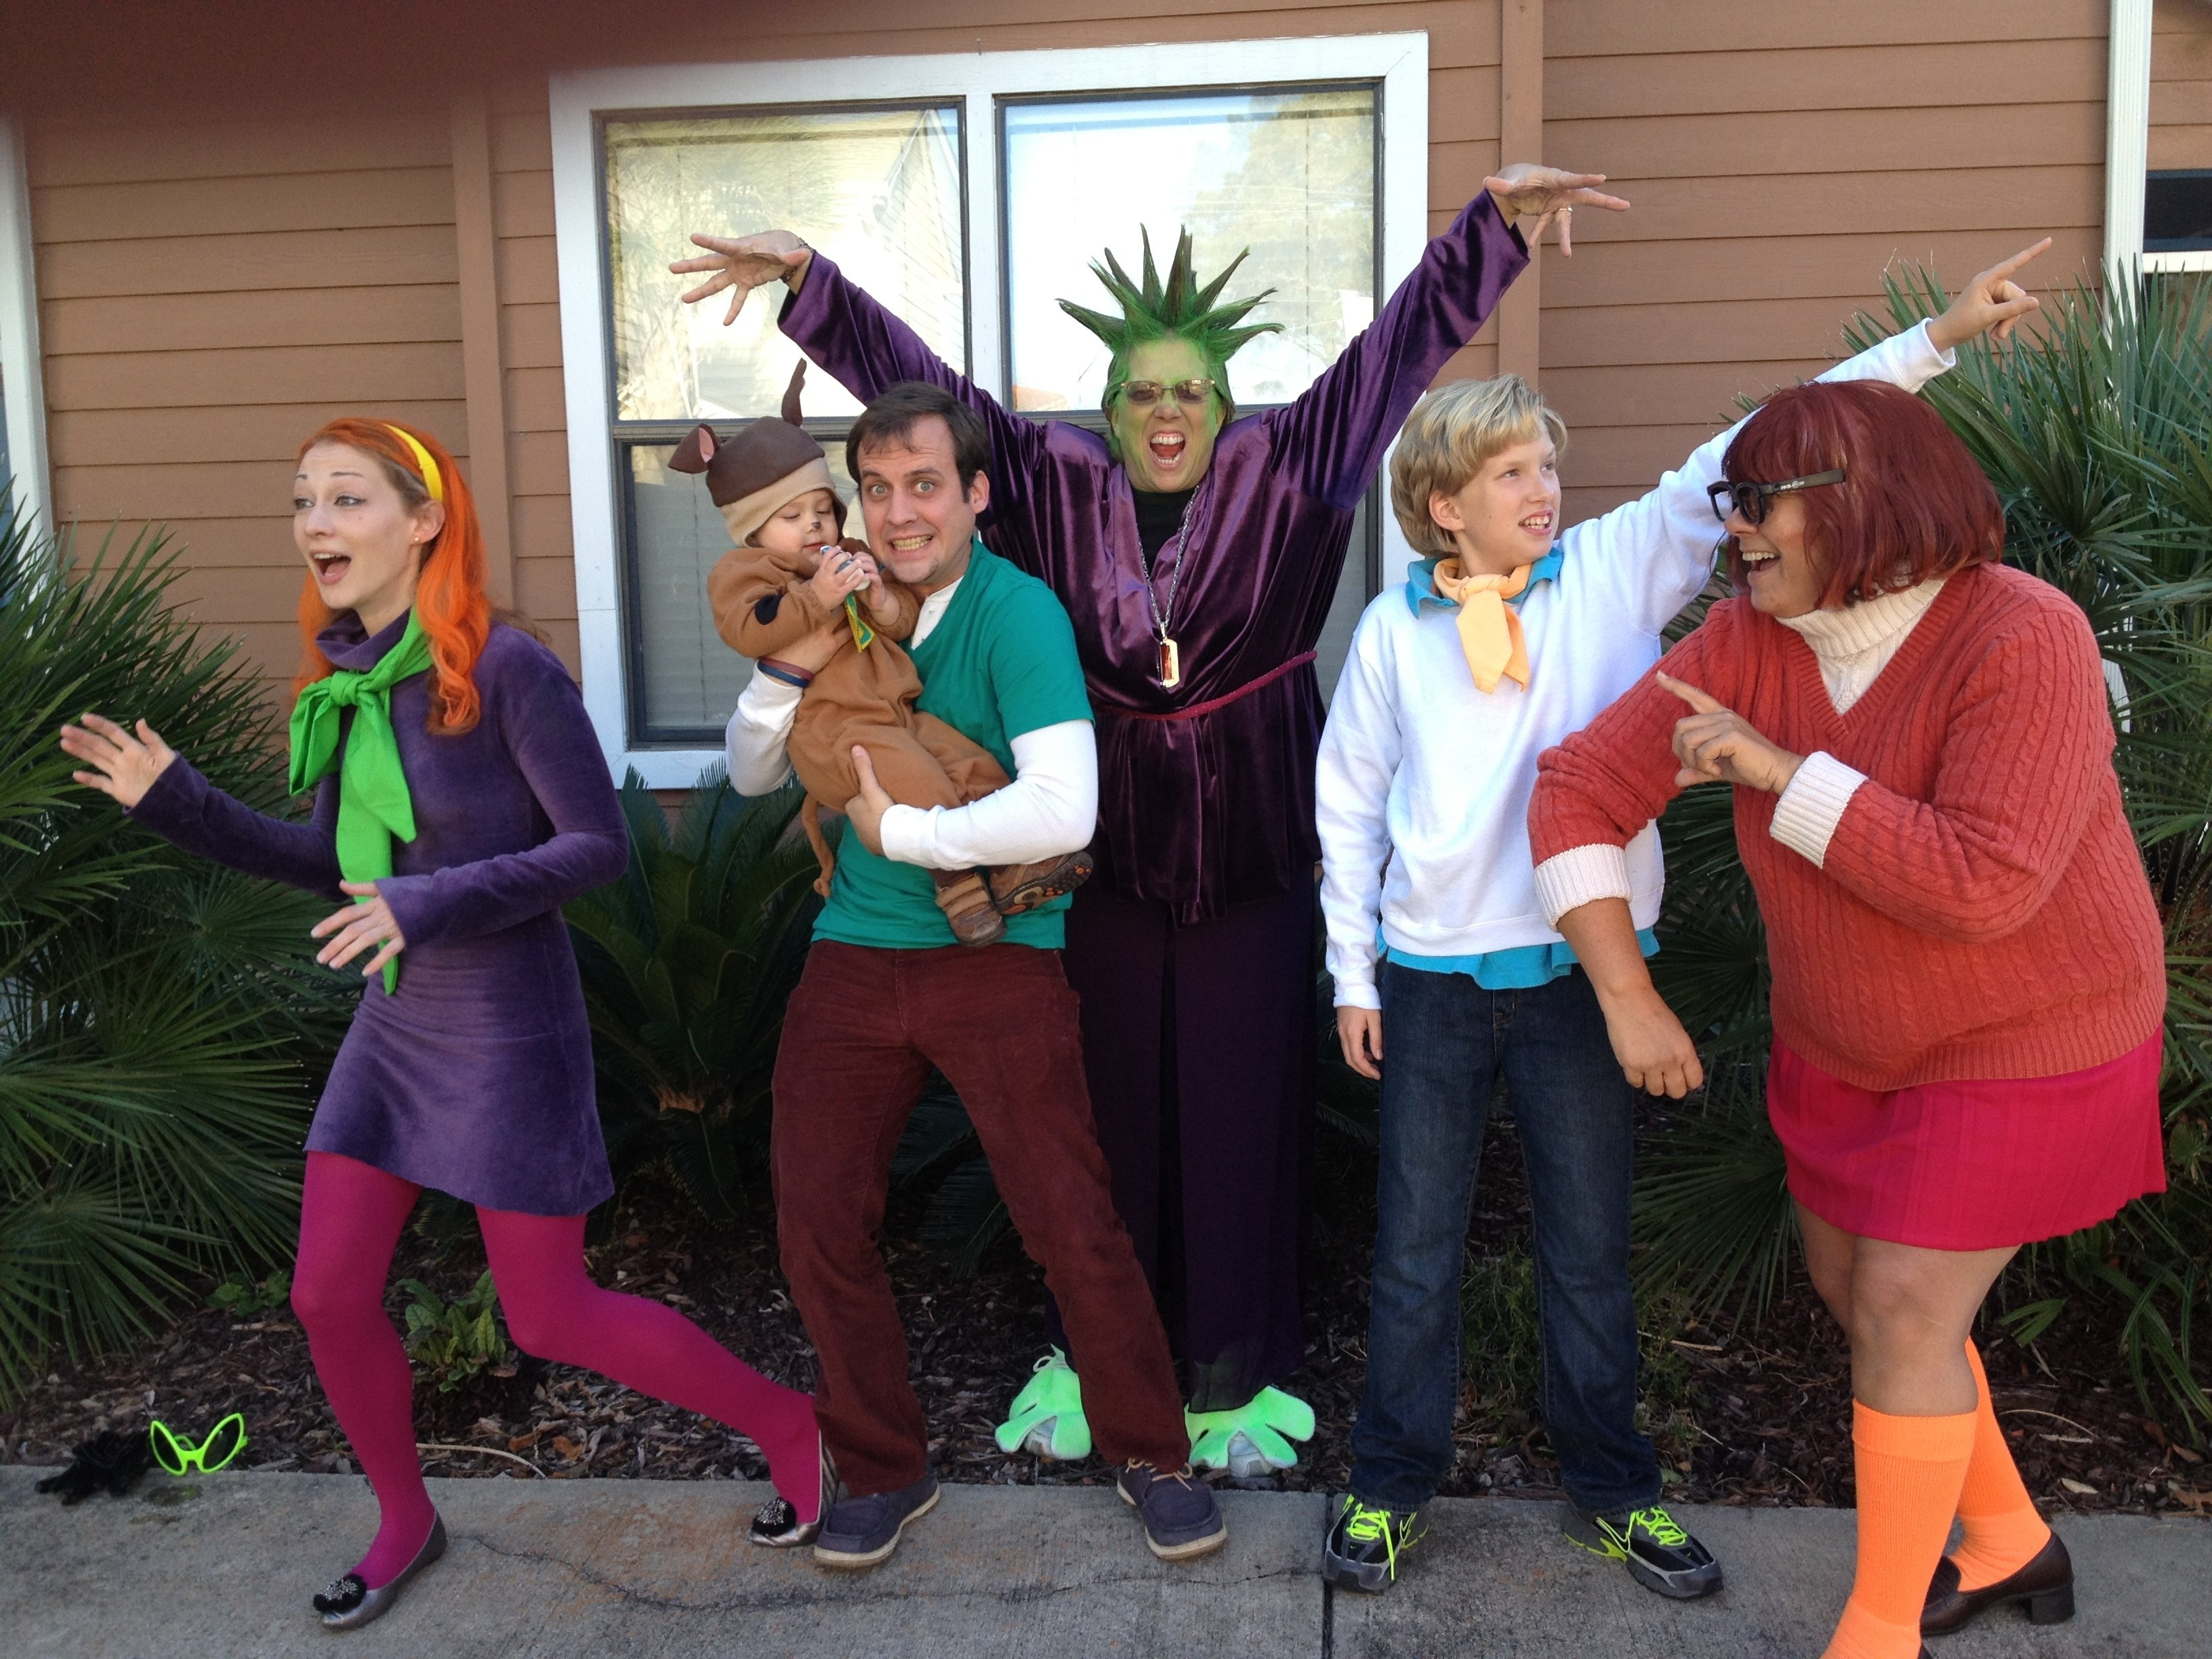 scooby doo and the gang family halloween costume- toddler, group